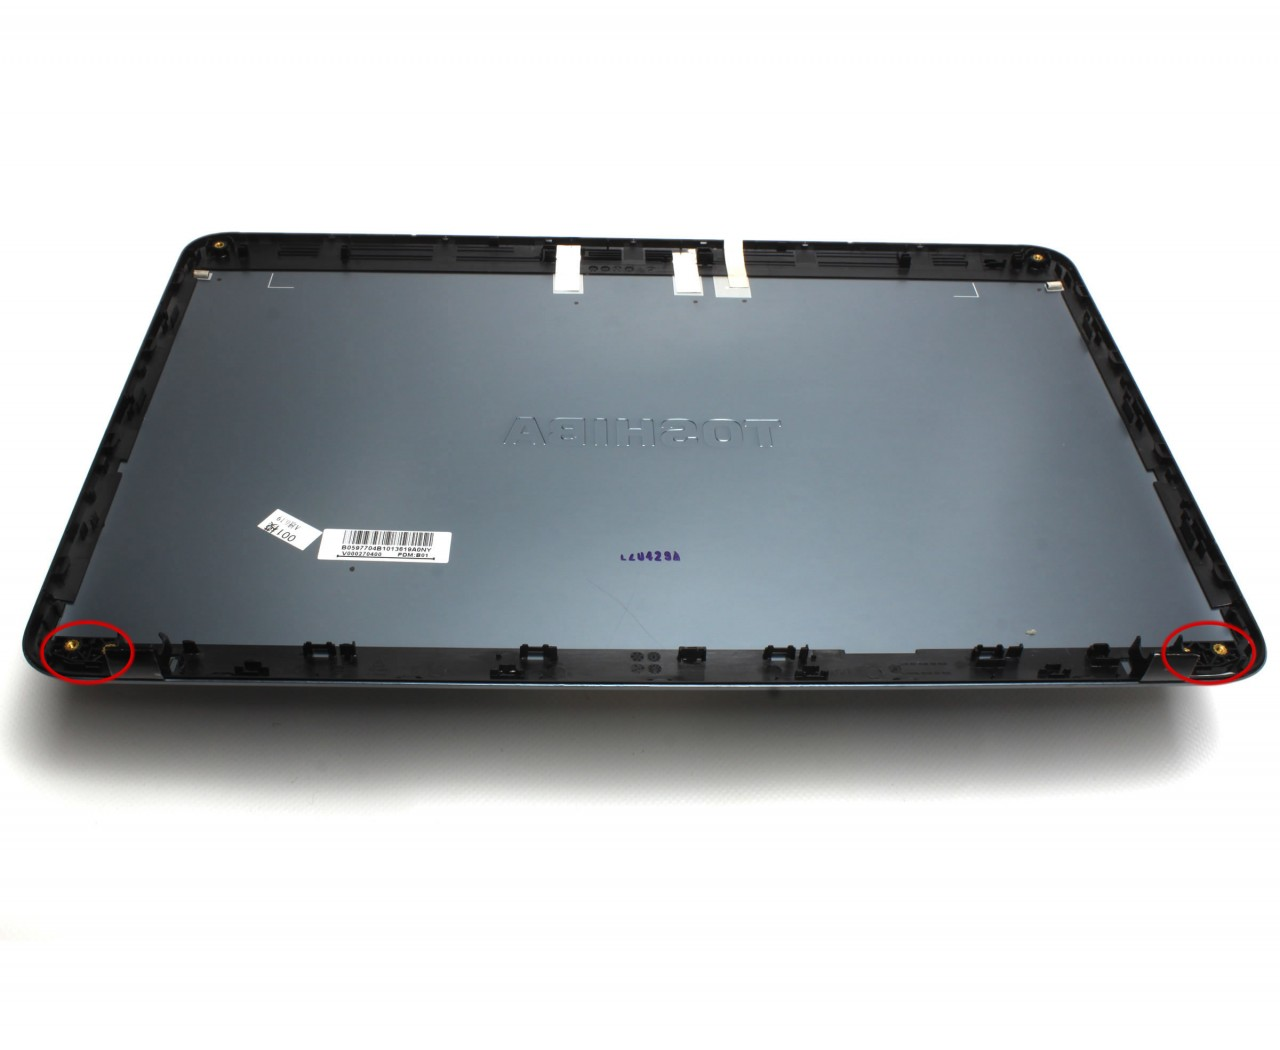 Capac Display BackCover Toshiba Satellite L855 Carcasa Display Gri cu 2 Suruburi Balamale imagine powerlaptop.ro 2021